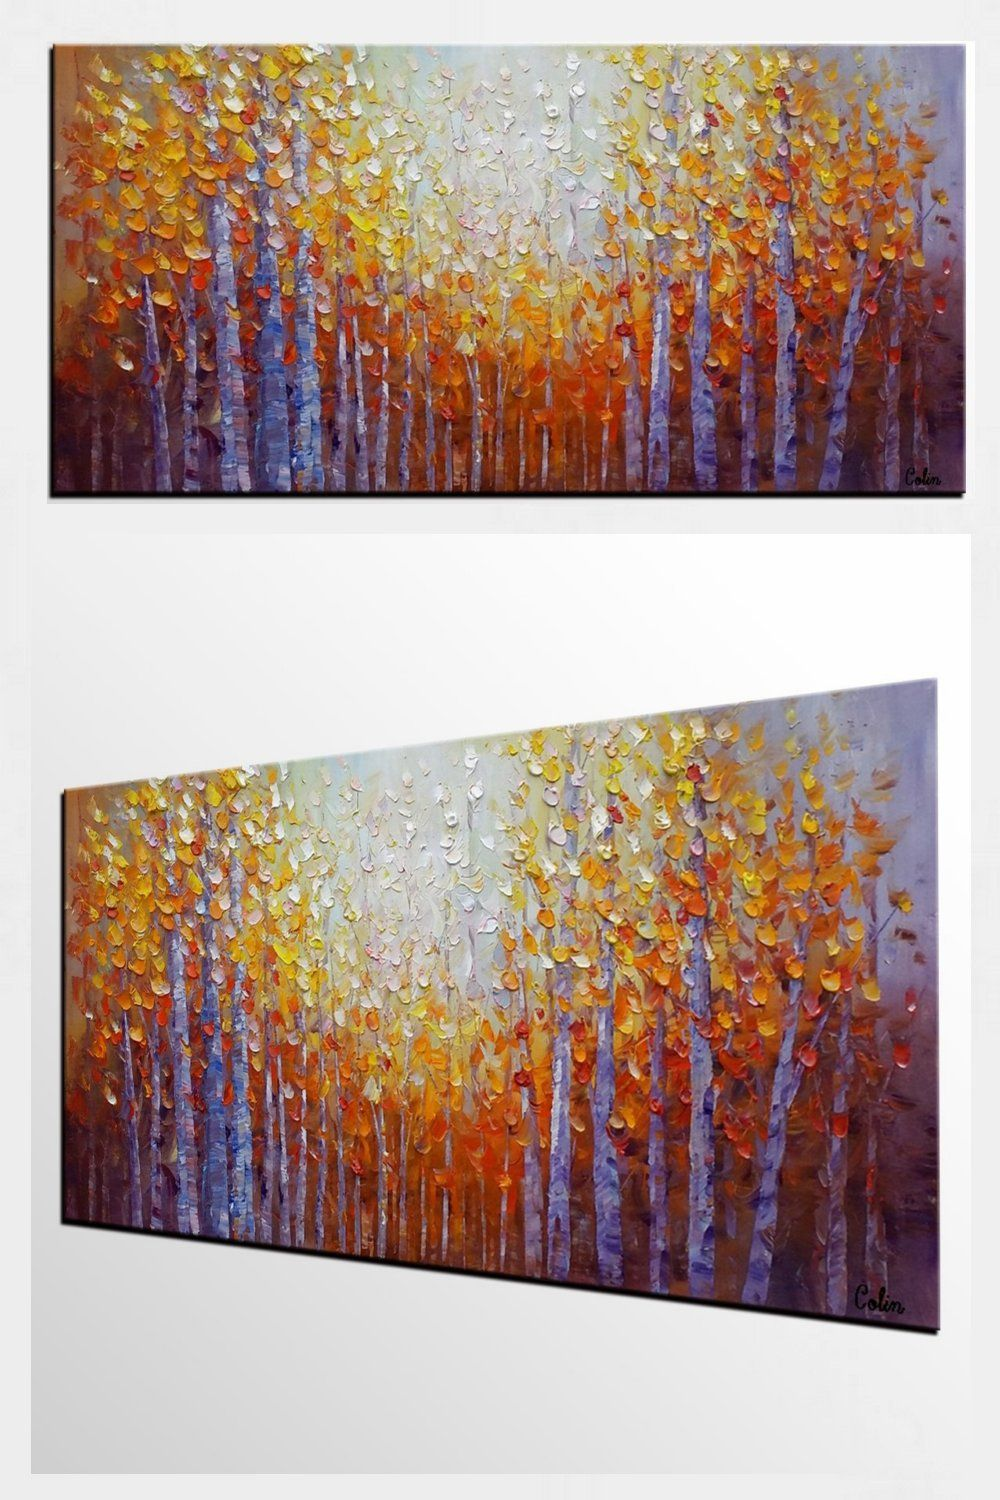 Dining room wall art autumn tree painting abstract painting large art oil painting for sale autumn treepainting paintings artwork buypainting